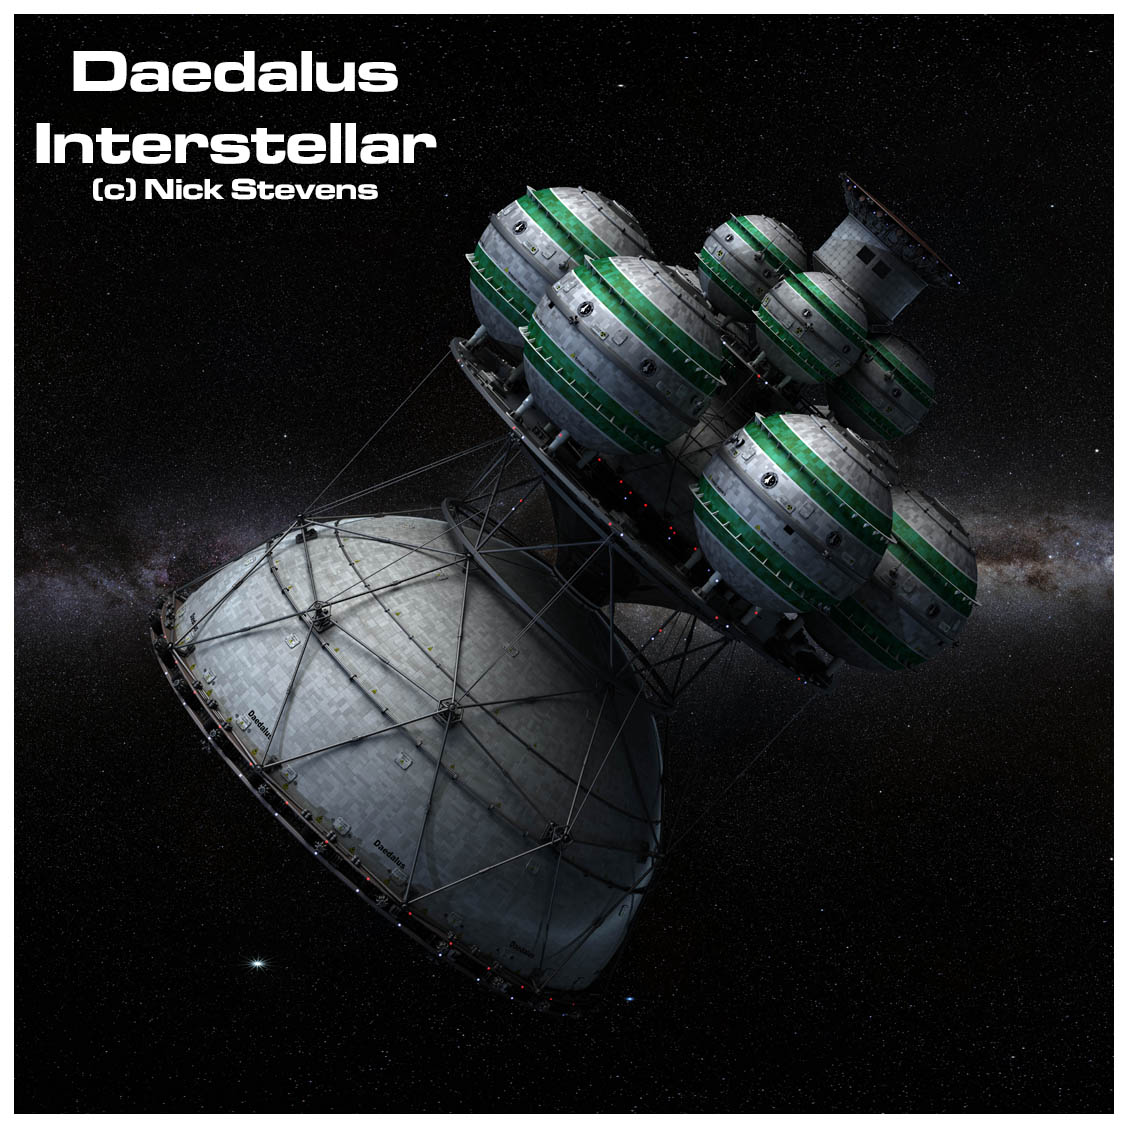 Daedalus interstellar